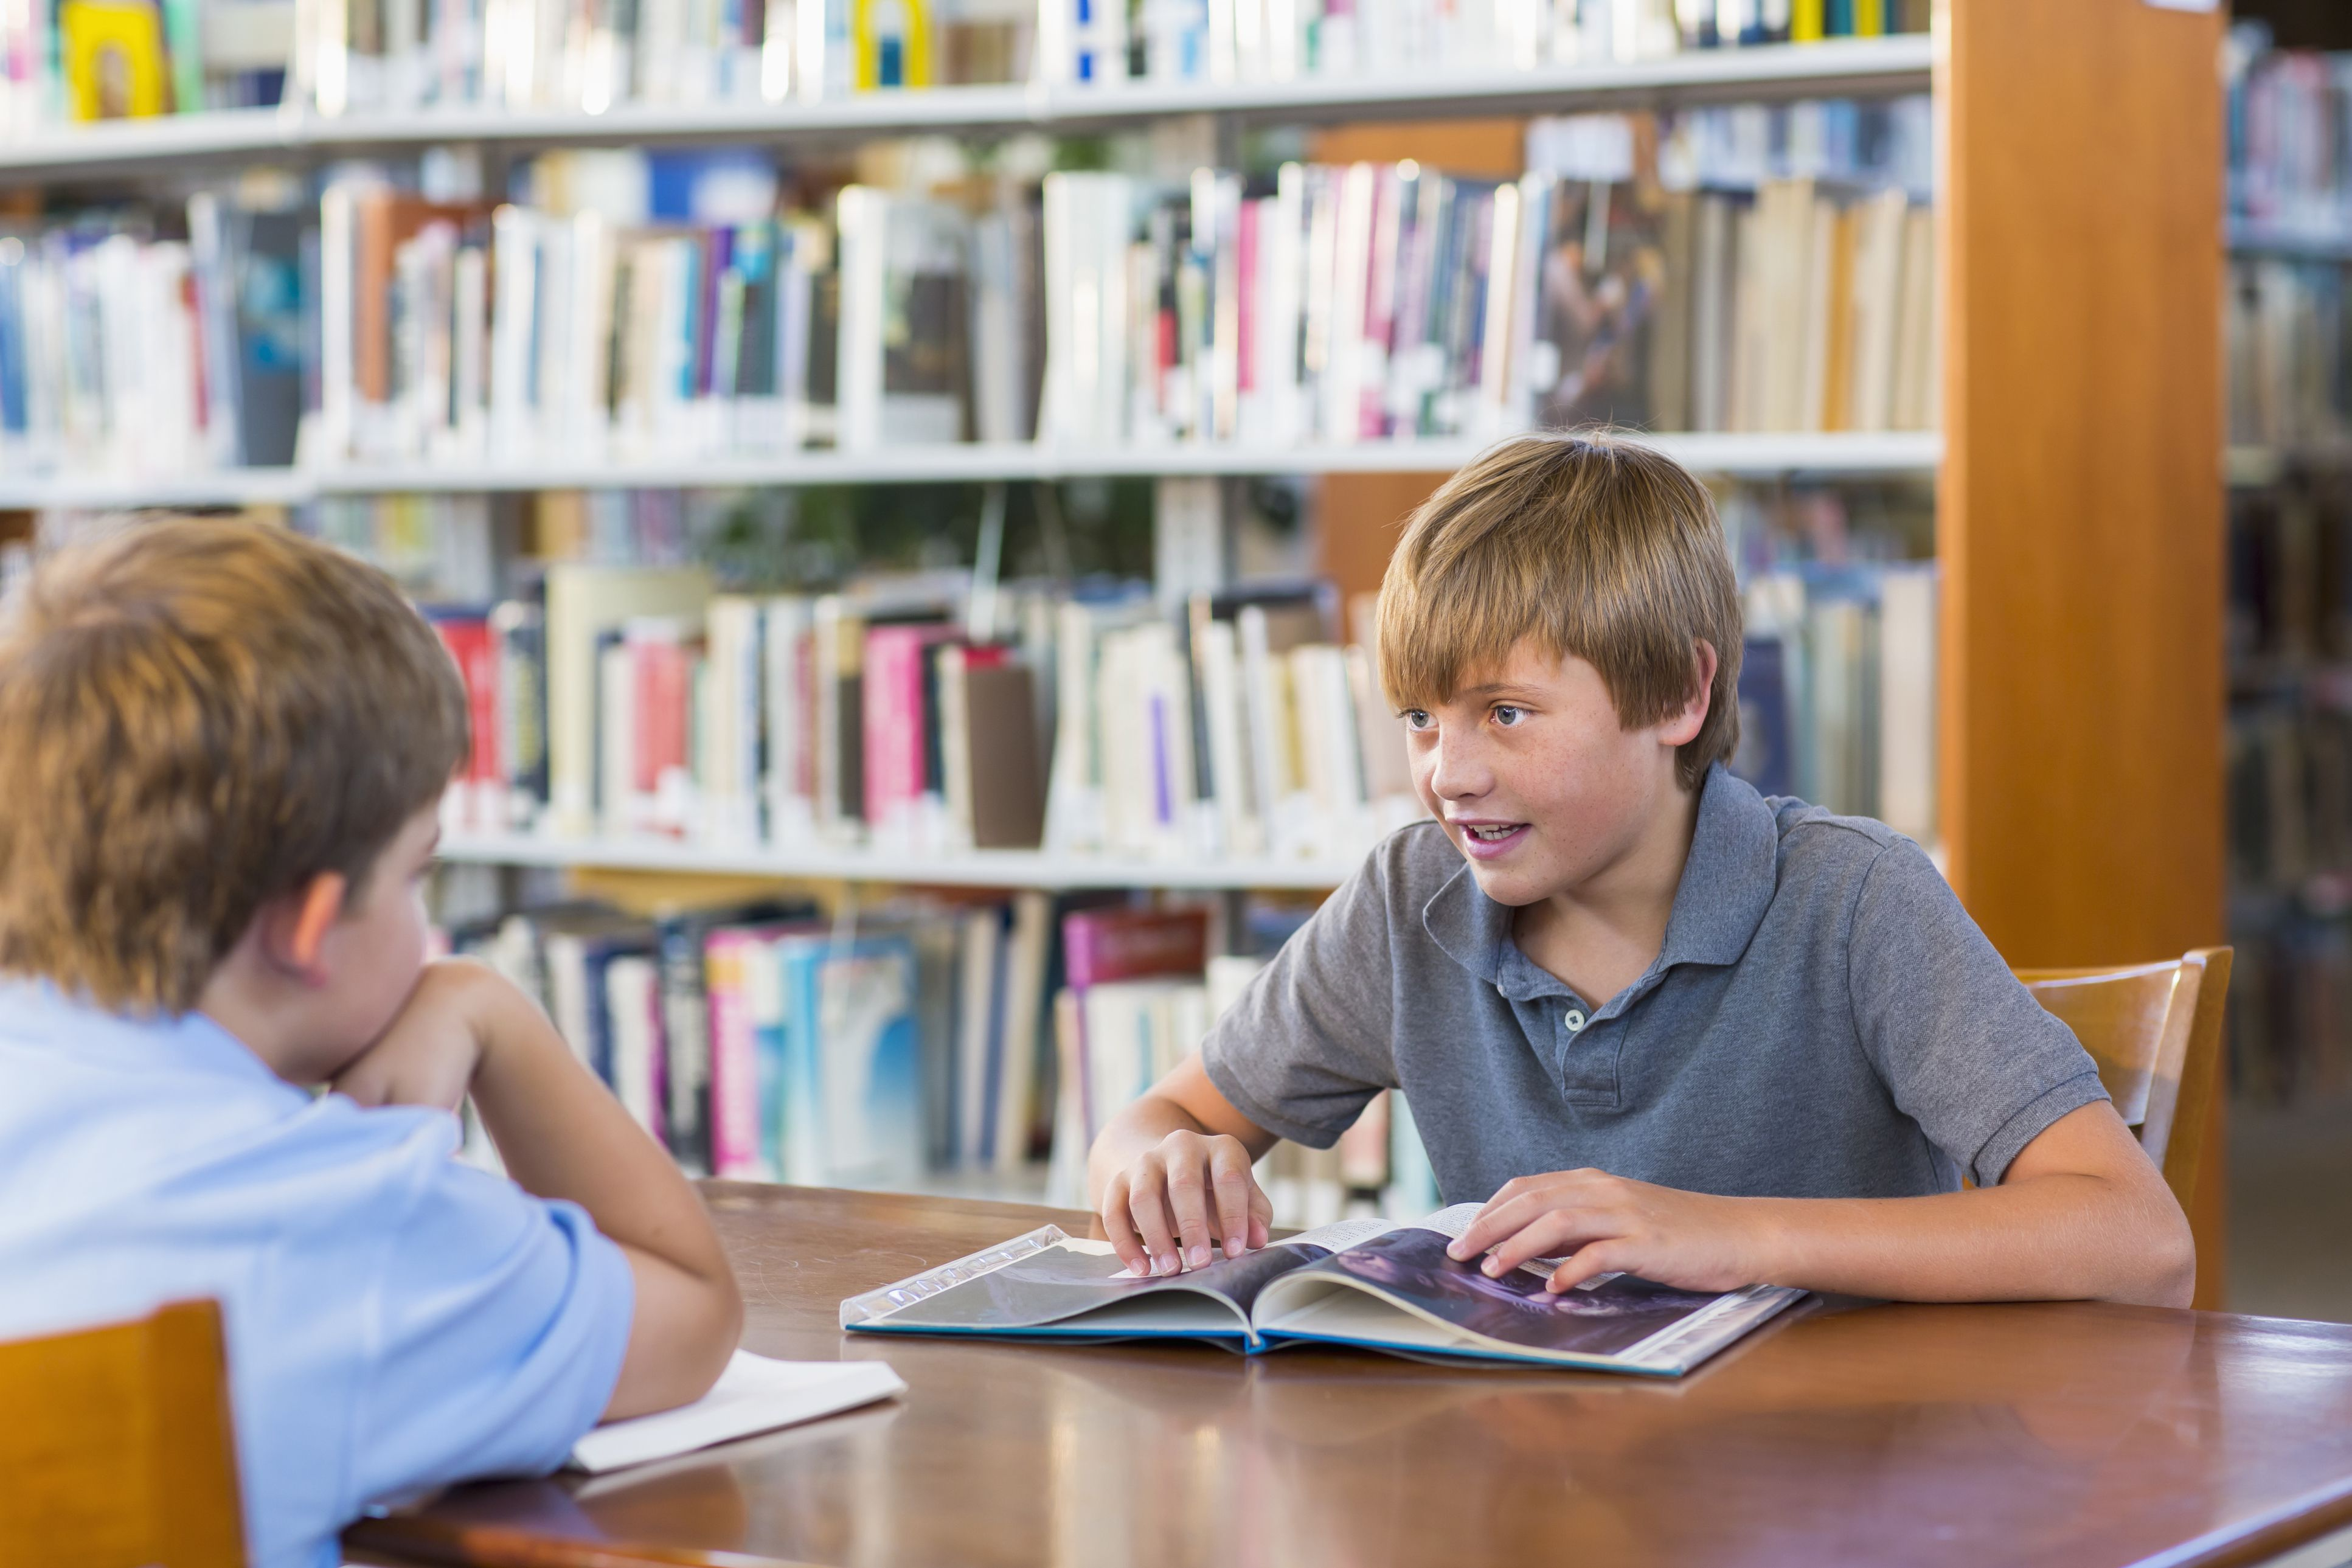 preparing a book report Writing a biography report involves choosing a subject, conducting research and organizing notes for the final write-up a biography report focuses on the details of a person's life or career.